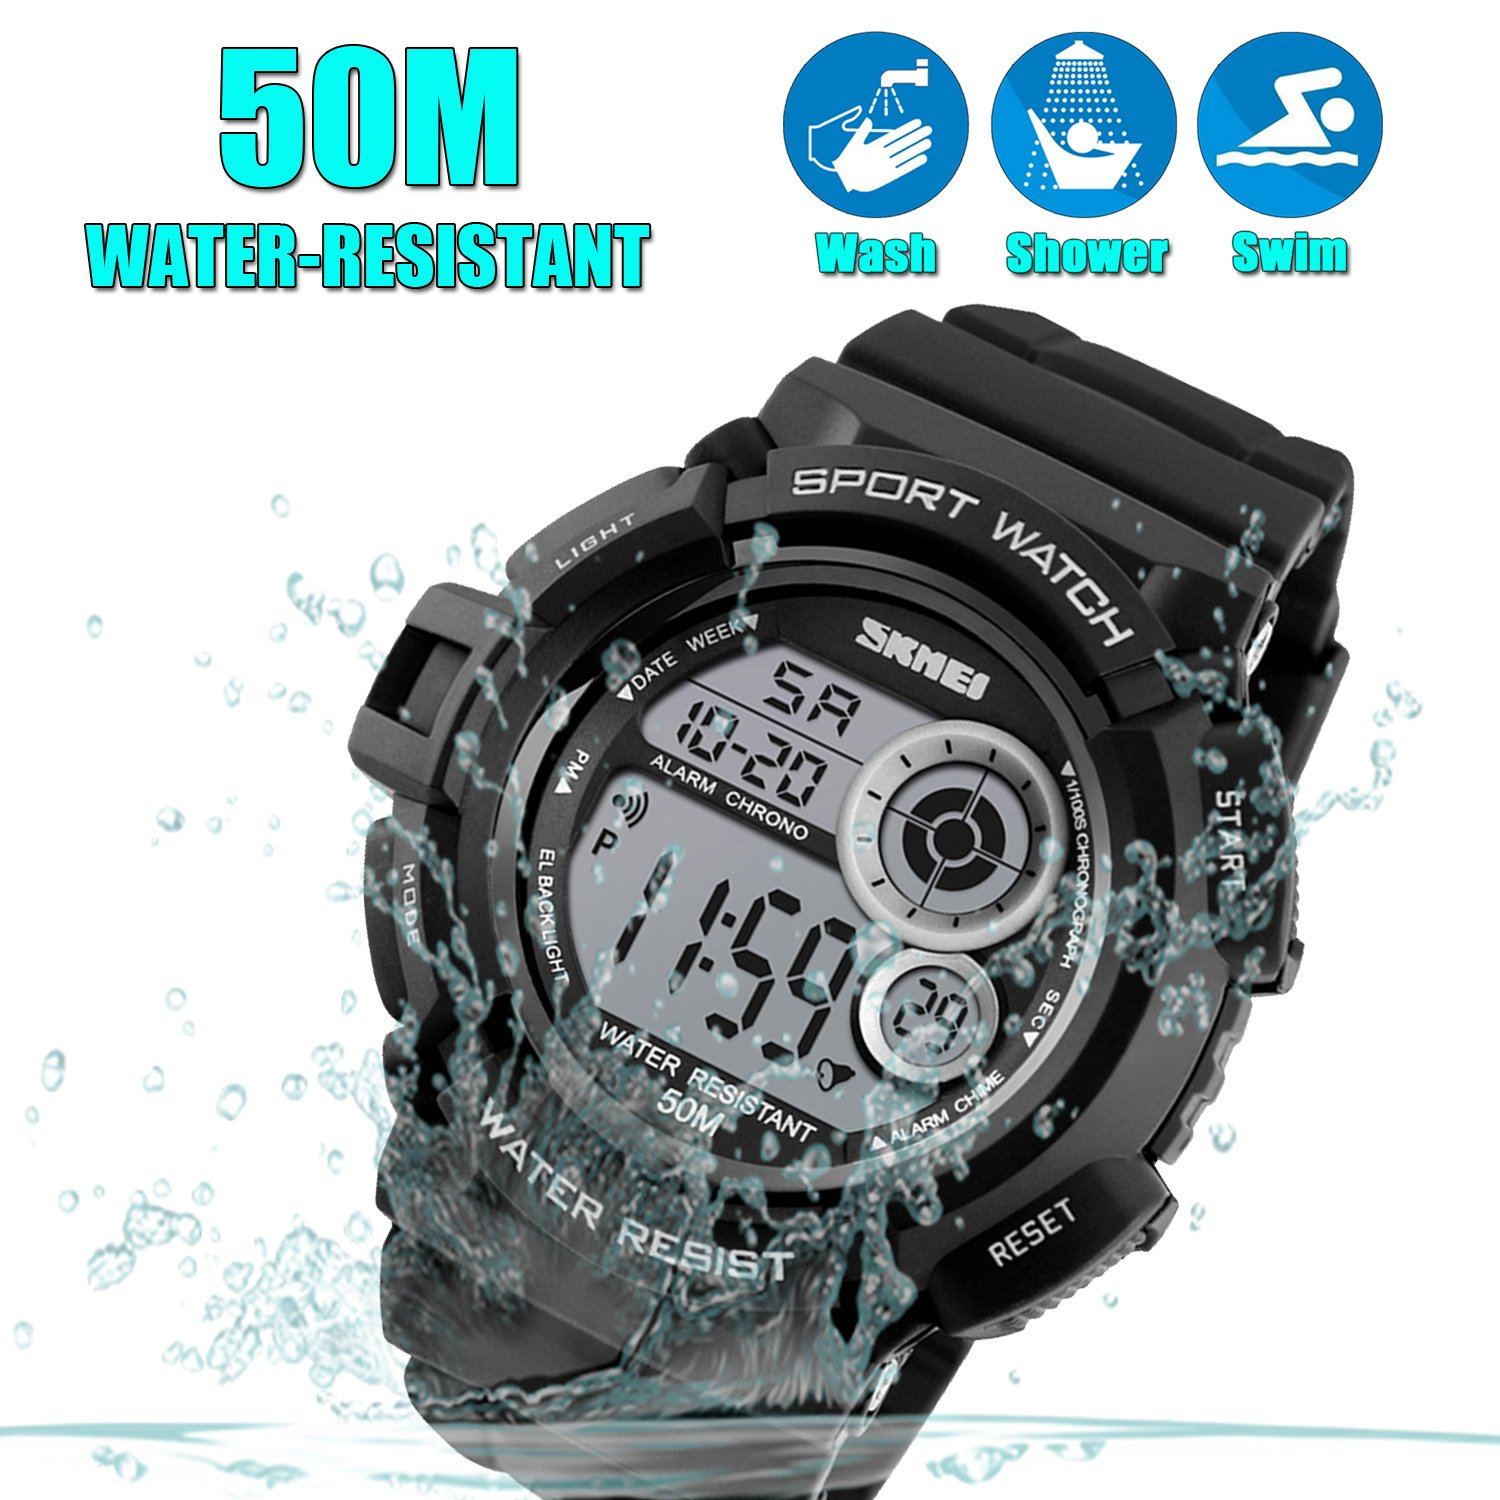 Men's Digital Sports Watch LED Screen Large Face Military Watches and Waterproof Casual Luminous Stopwatch Alarm Simple Army Watch Black by USWAT (Image #2)